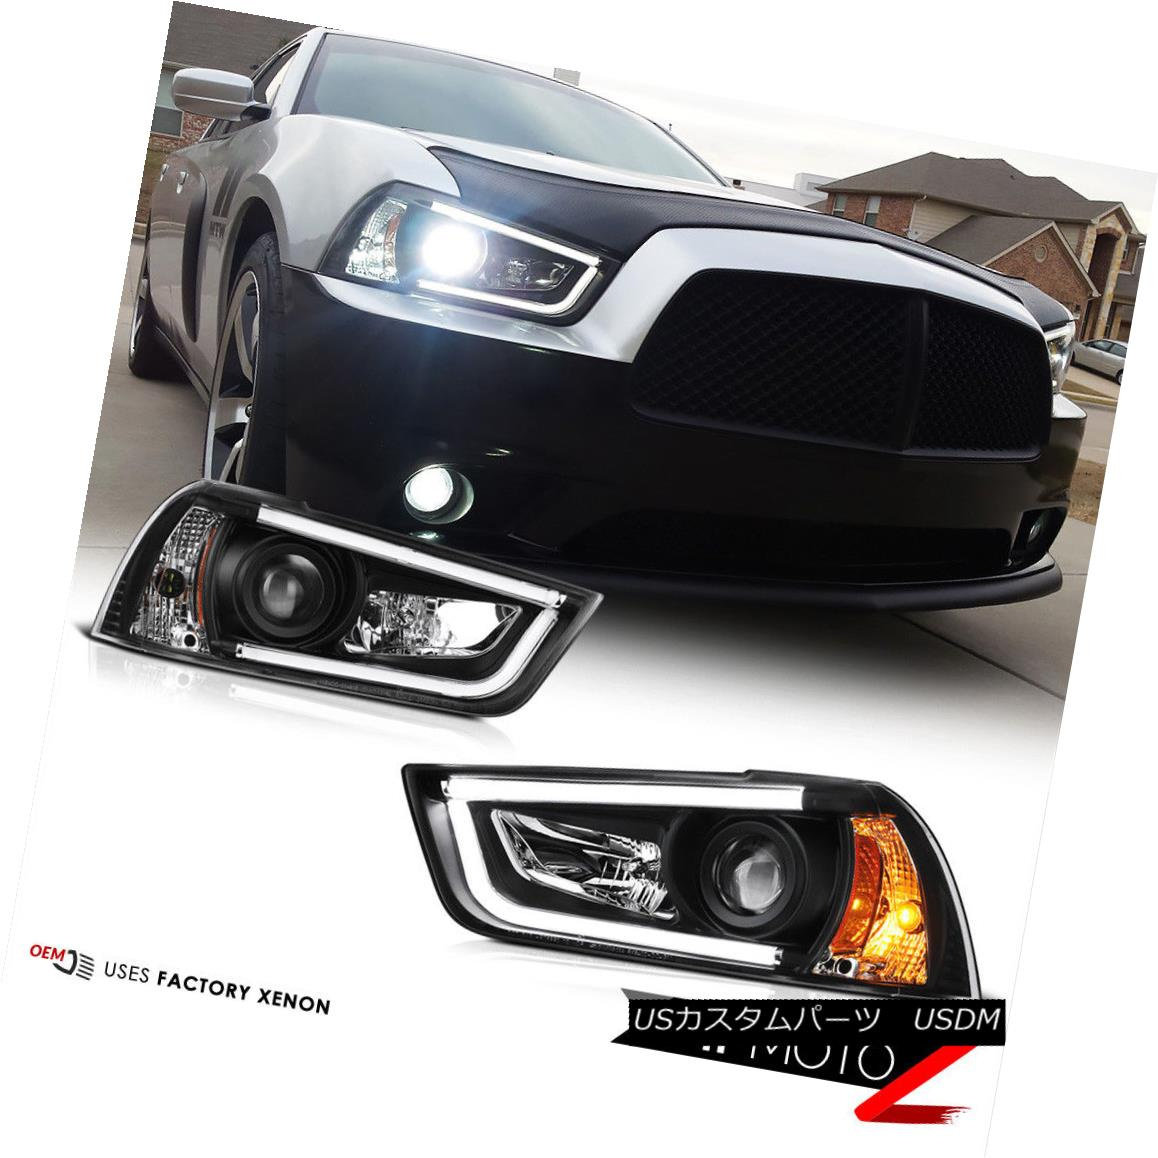 ヘッドライト 2011-2014 Dodge CHARGER Halo Angel Eyes LED Projector Black Headlight HID MODEL 2011-2014 Dodge CHARGER Halo Angel Eyes LEDプロジェクターブラックヘッドライトHID MODEL